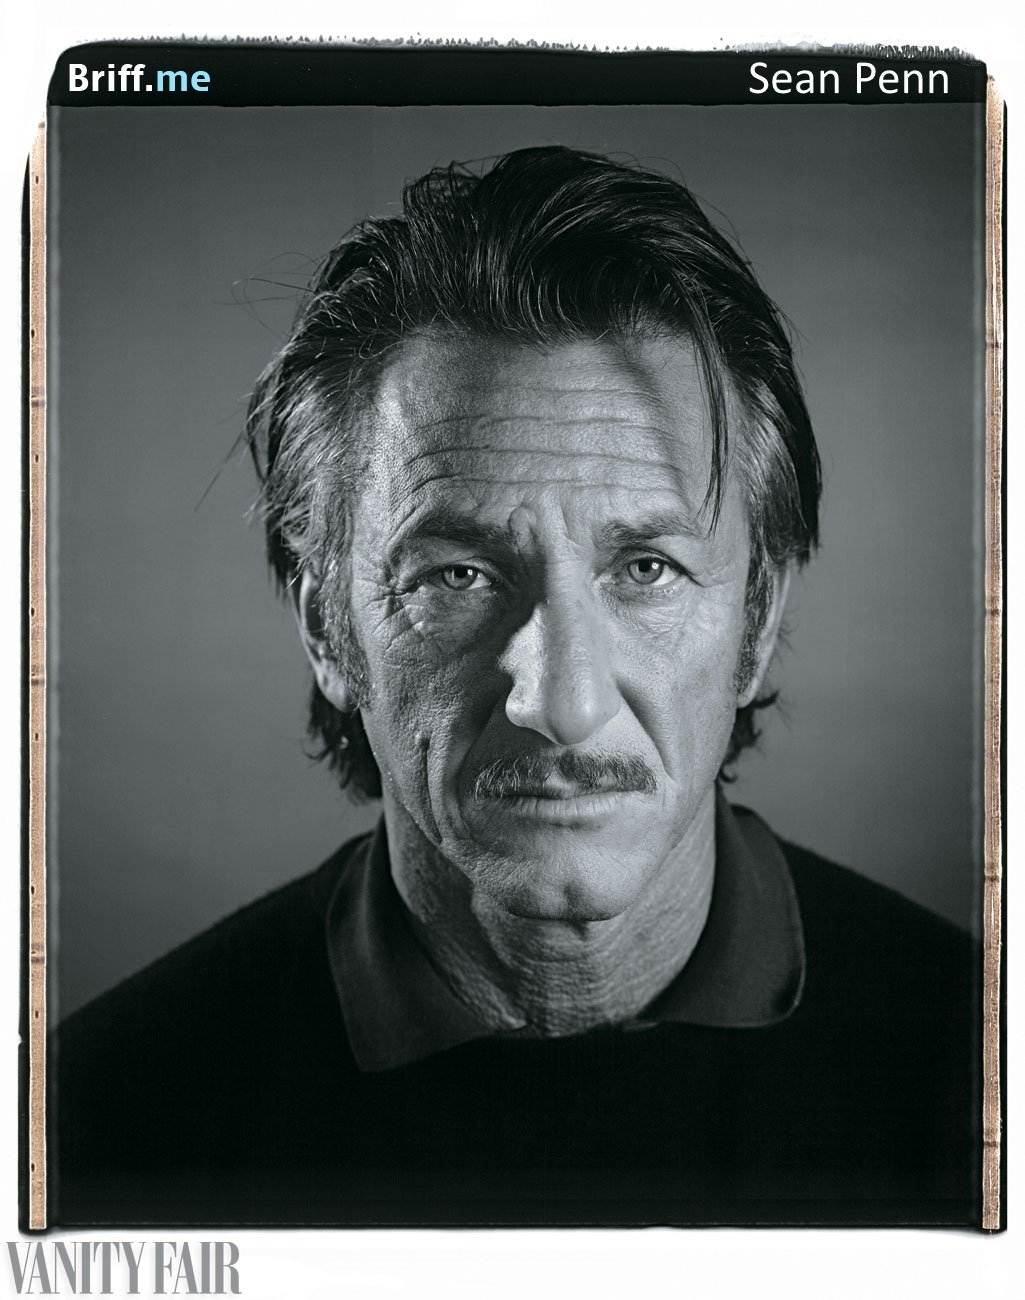 Celebs without Makeup 8 Sean Penn